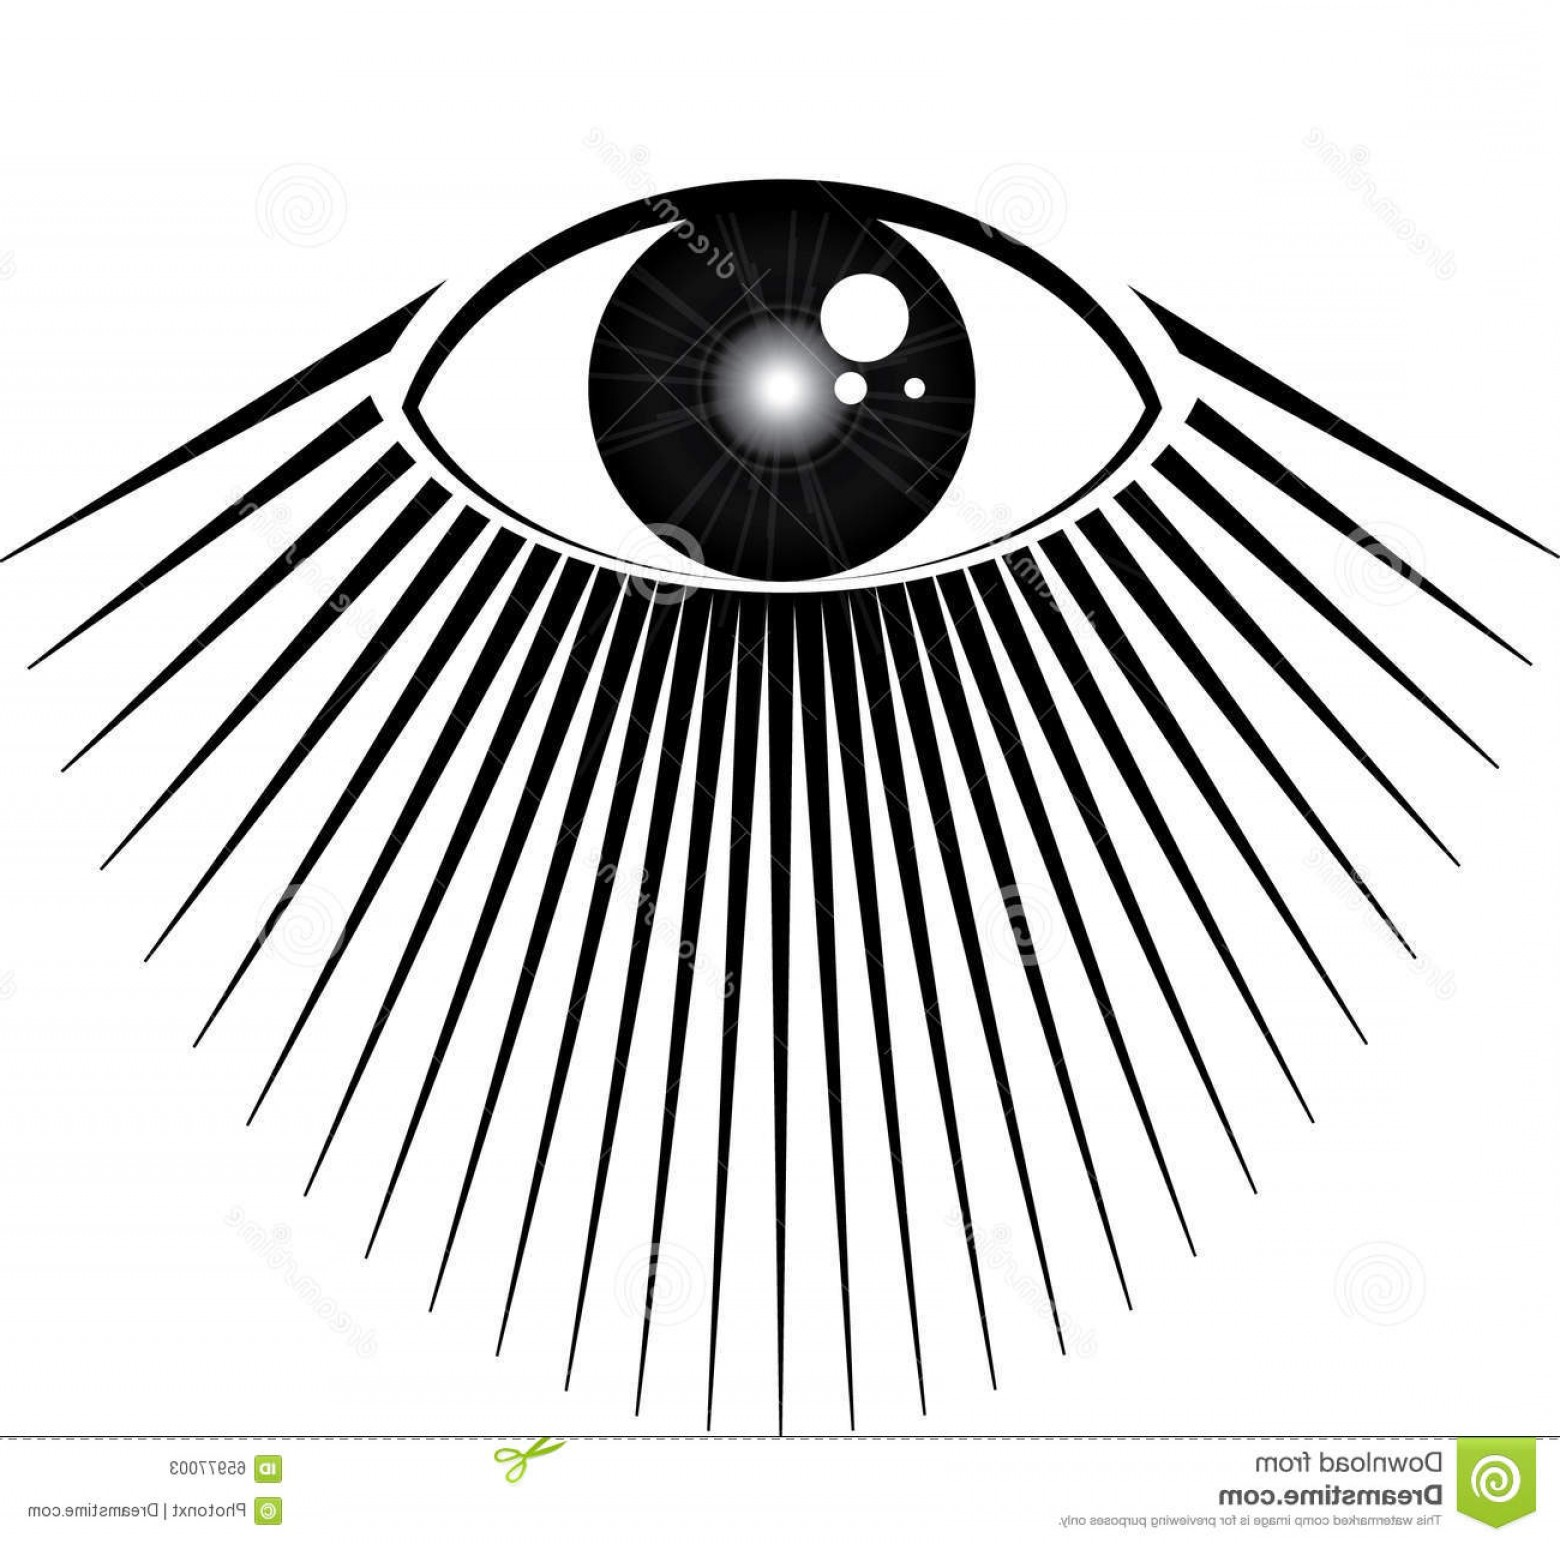 All seeing eye clipart black and white picture free download Stock Illustration All Seeing Eye Rays Light Image | SOIDERGI picture free download